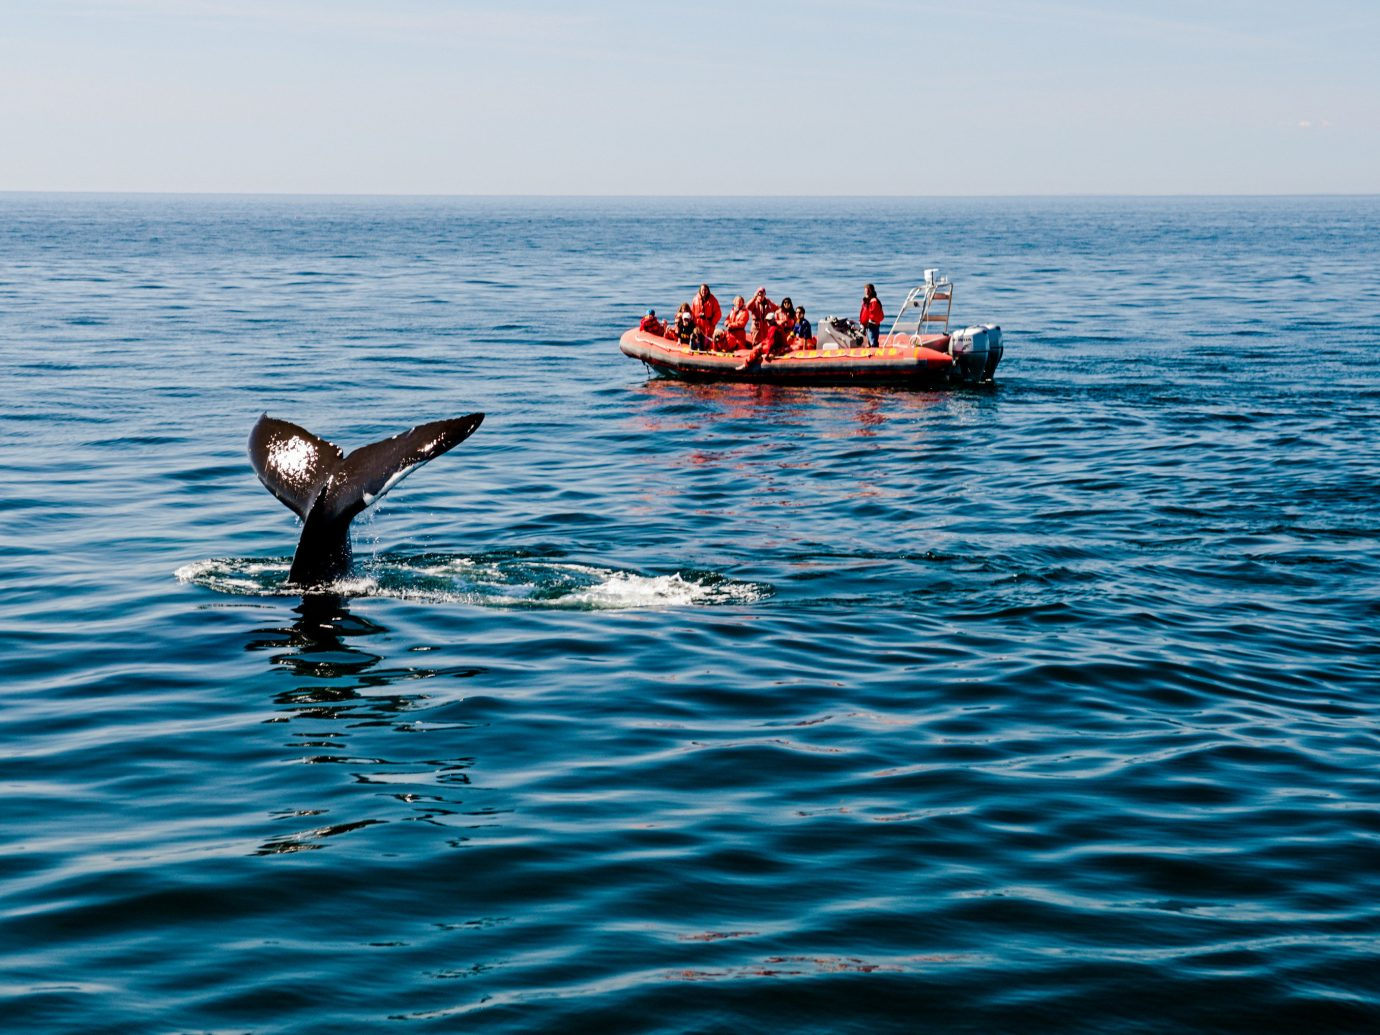 Trip Ideas water sky outdoor Boat Sea Ocean marine mammal whales dolphins and porpoises vehicle Coast boating aquatic mammal bay dolphin swimming